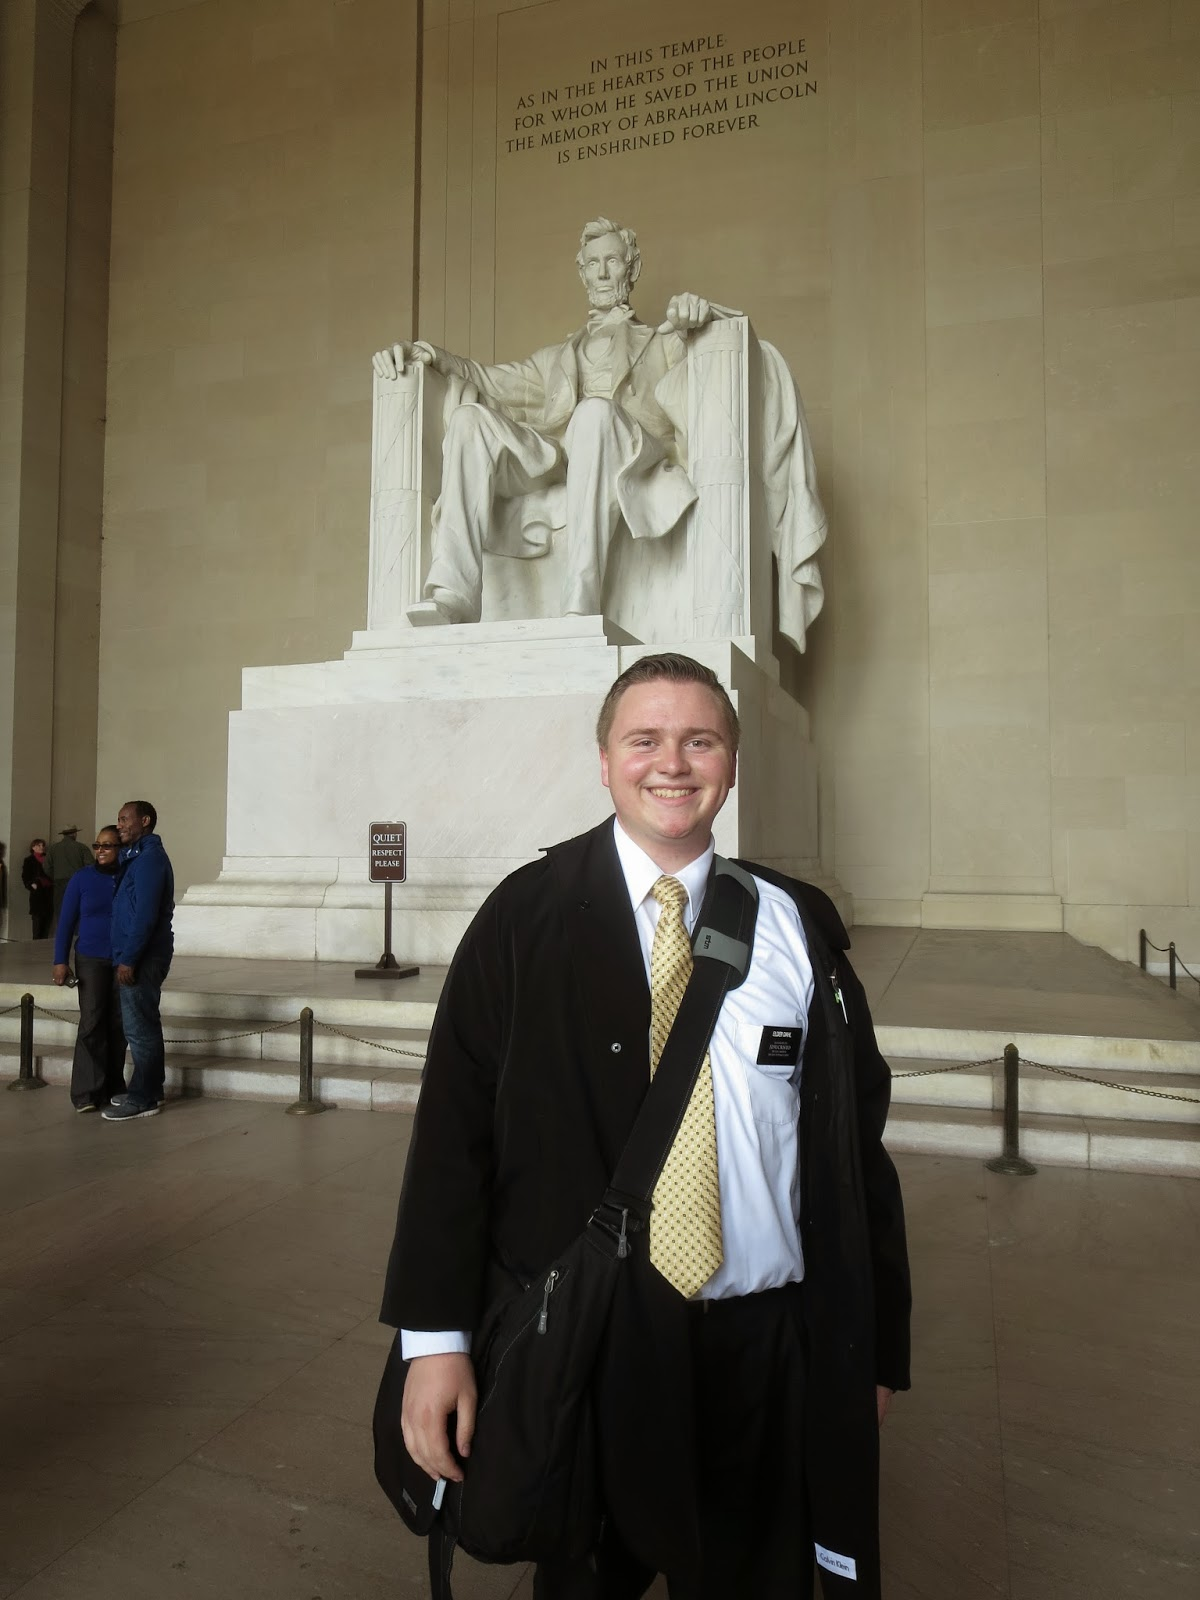 Visit Lincoln Memorial Washington DC